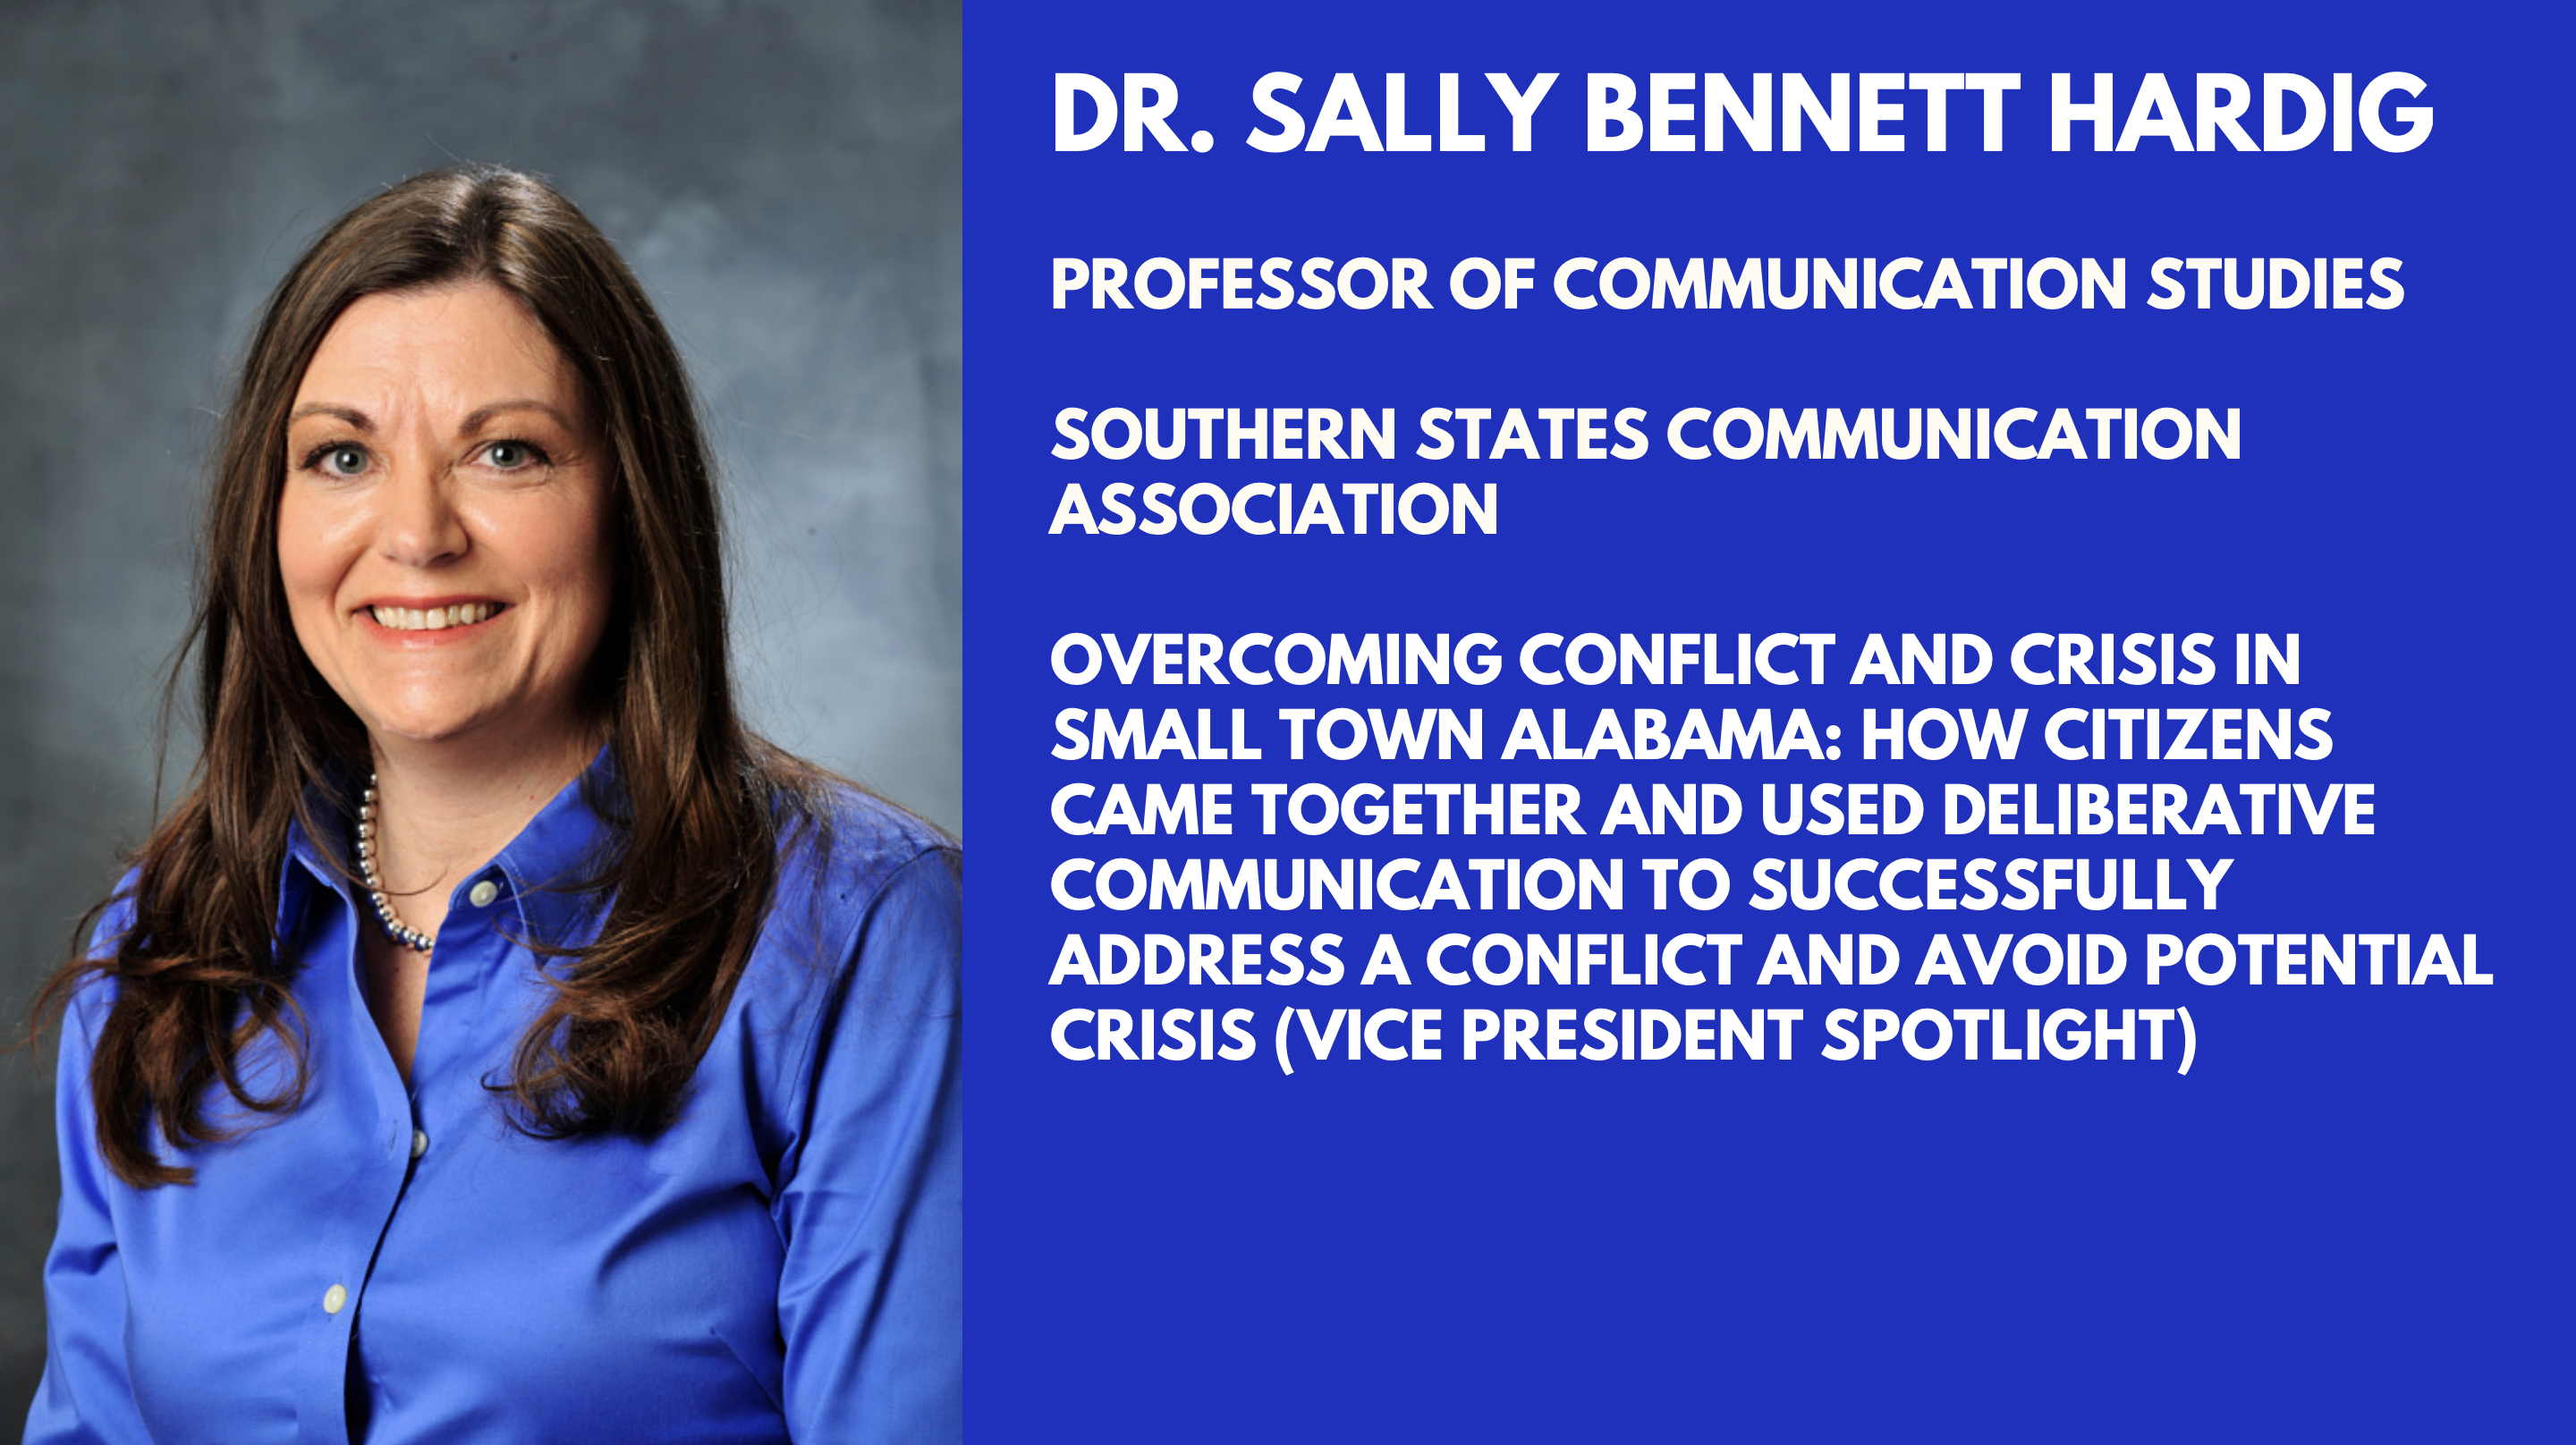 Dr. Sally Bennett Hardig will be presenting at SSCA 2019!